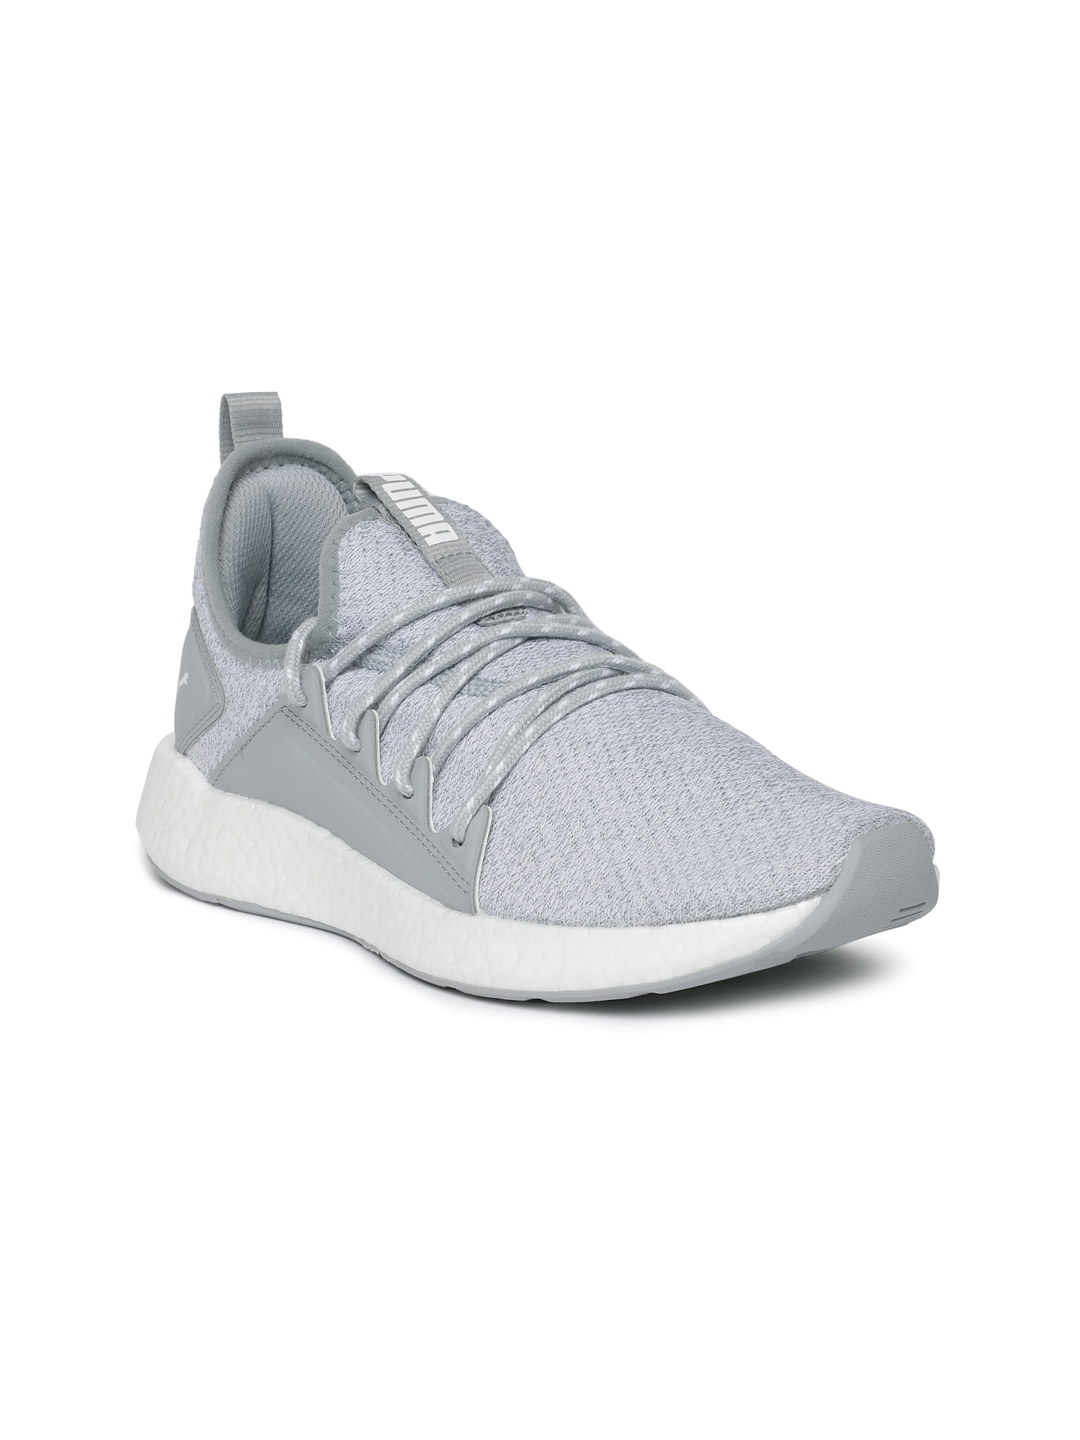 Buy Puma Women Grey NRGY Neko Knitted Running Shoes - Sports Shoes ... 0f6498366